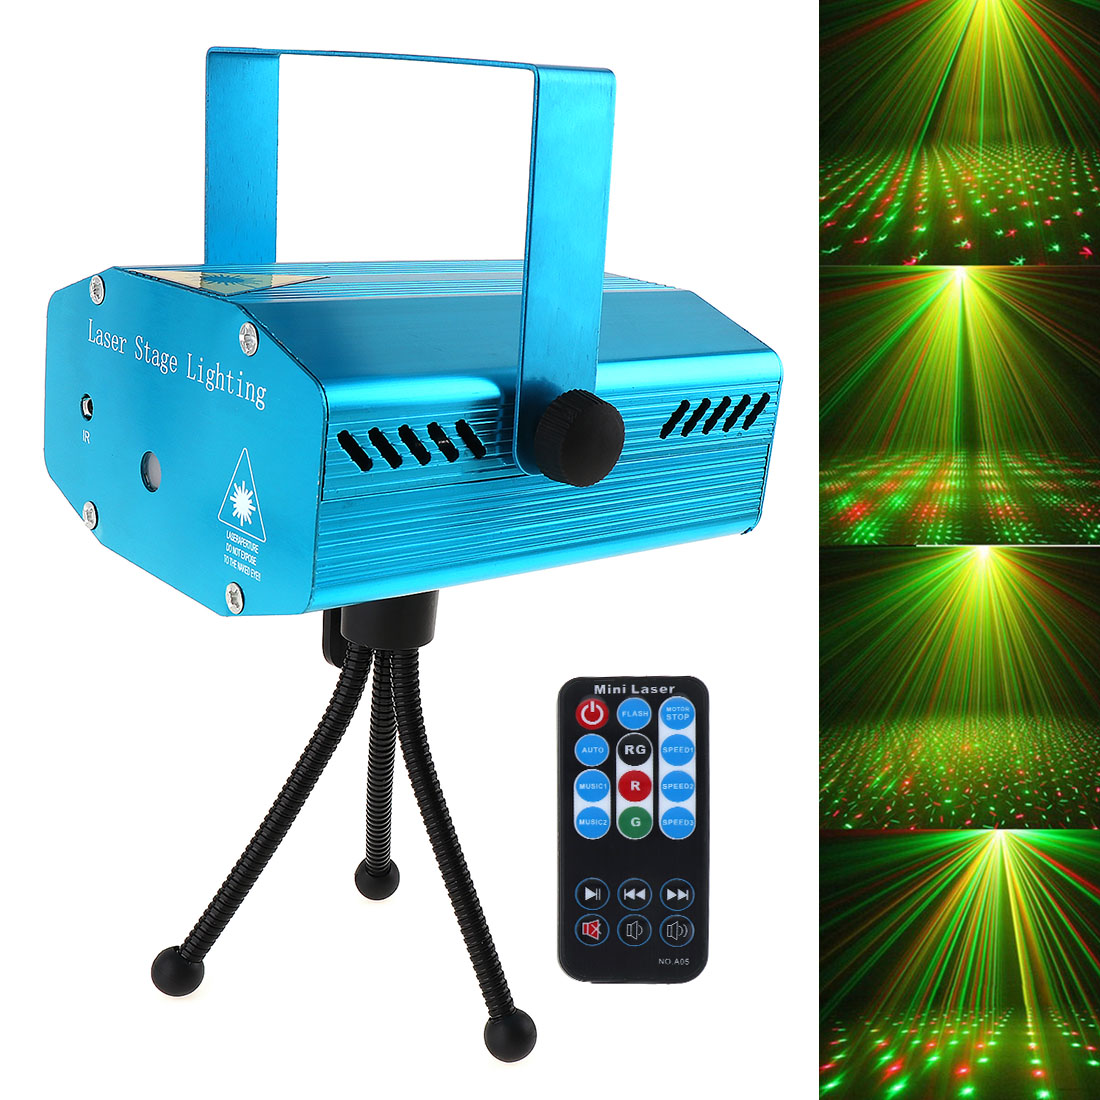 Blue Mini Laser Pointer Projector Light DJ Disco Laser Stage Lighting AC110-240V For Party Entertainment Disco Club Bar rg mini 3 lens 24 patterns led laser projector stage lighting effect 3w blue for dj disco party club laser